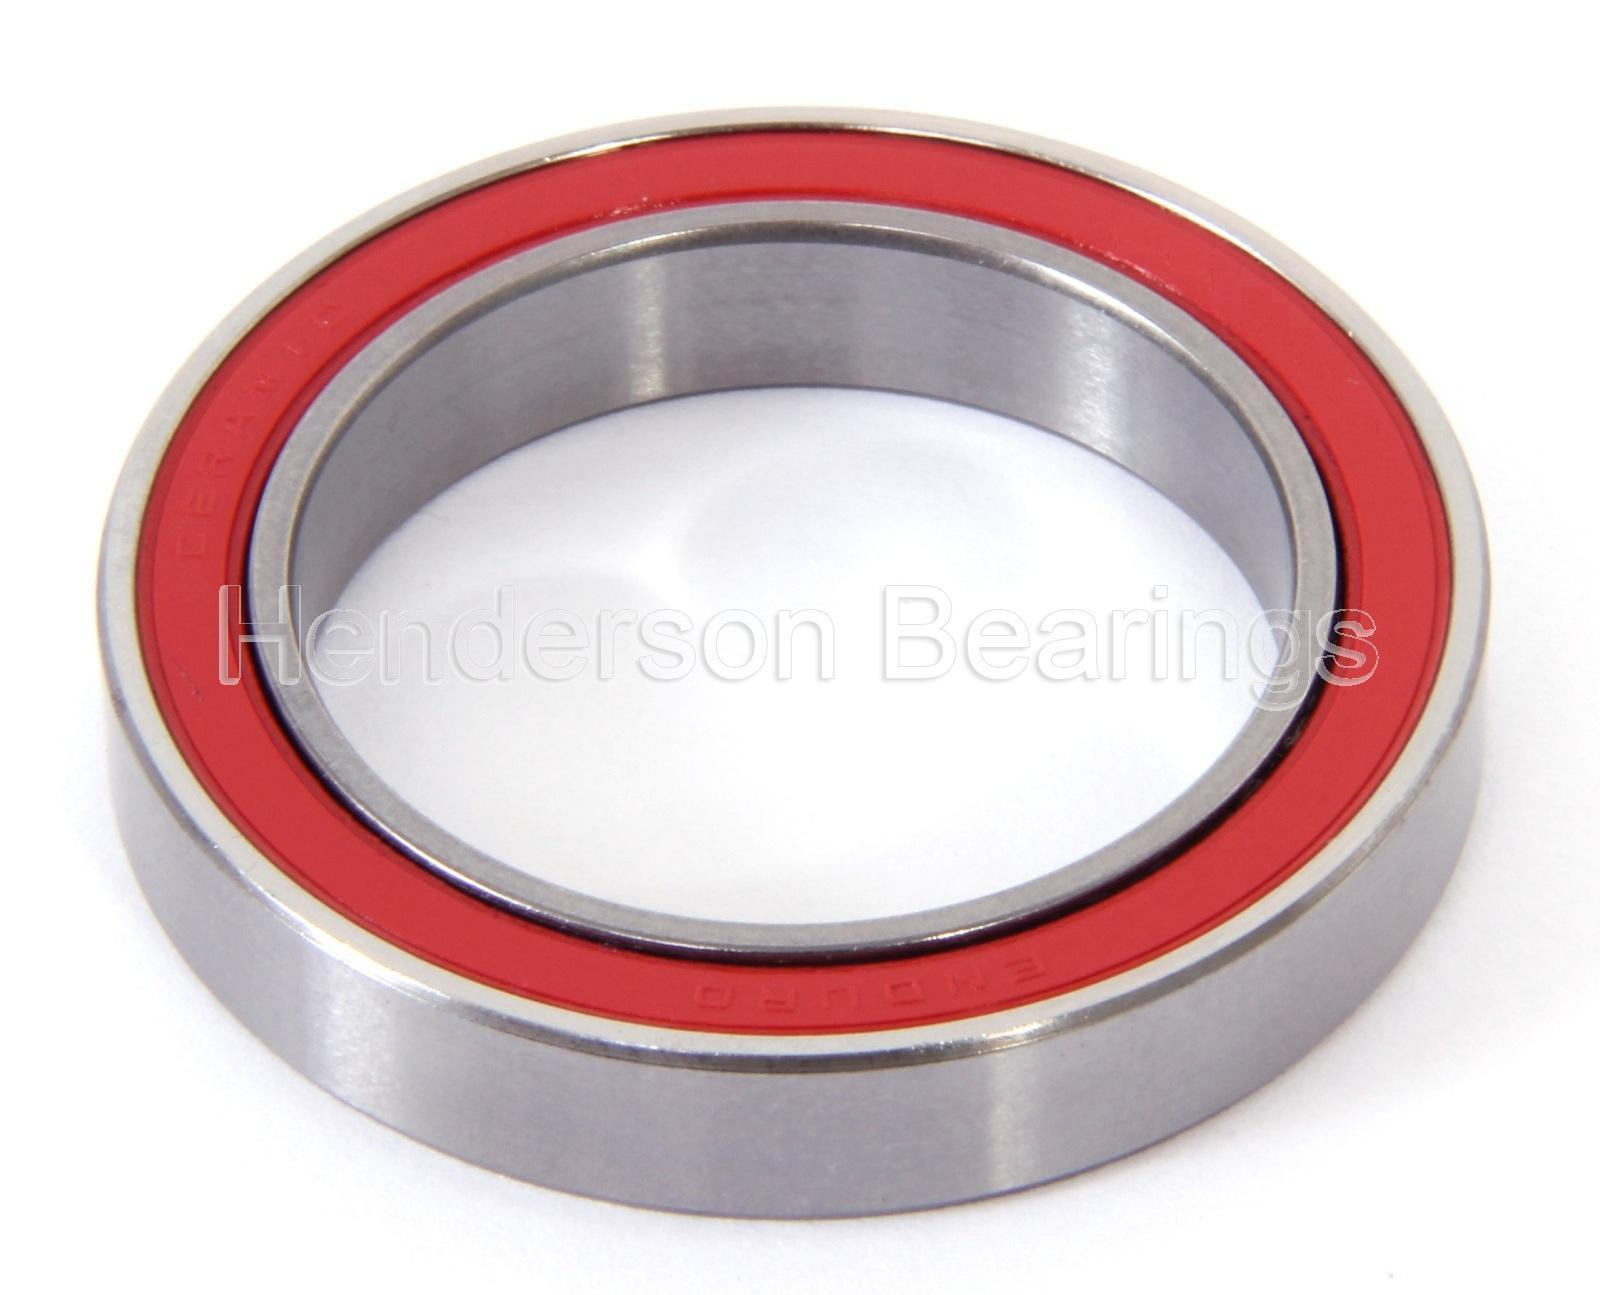 high temperature CH697-LLB Enduro Ceramic Hybrid Bicycle Bearing Abec5 7x17x5mm